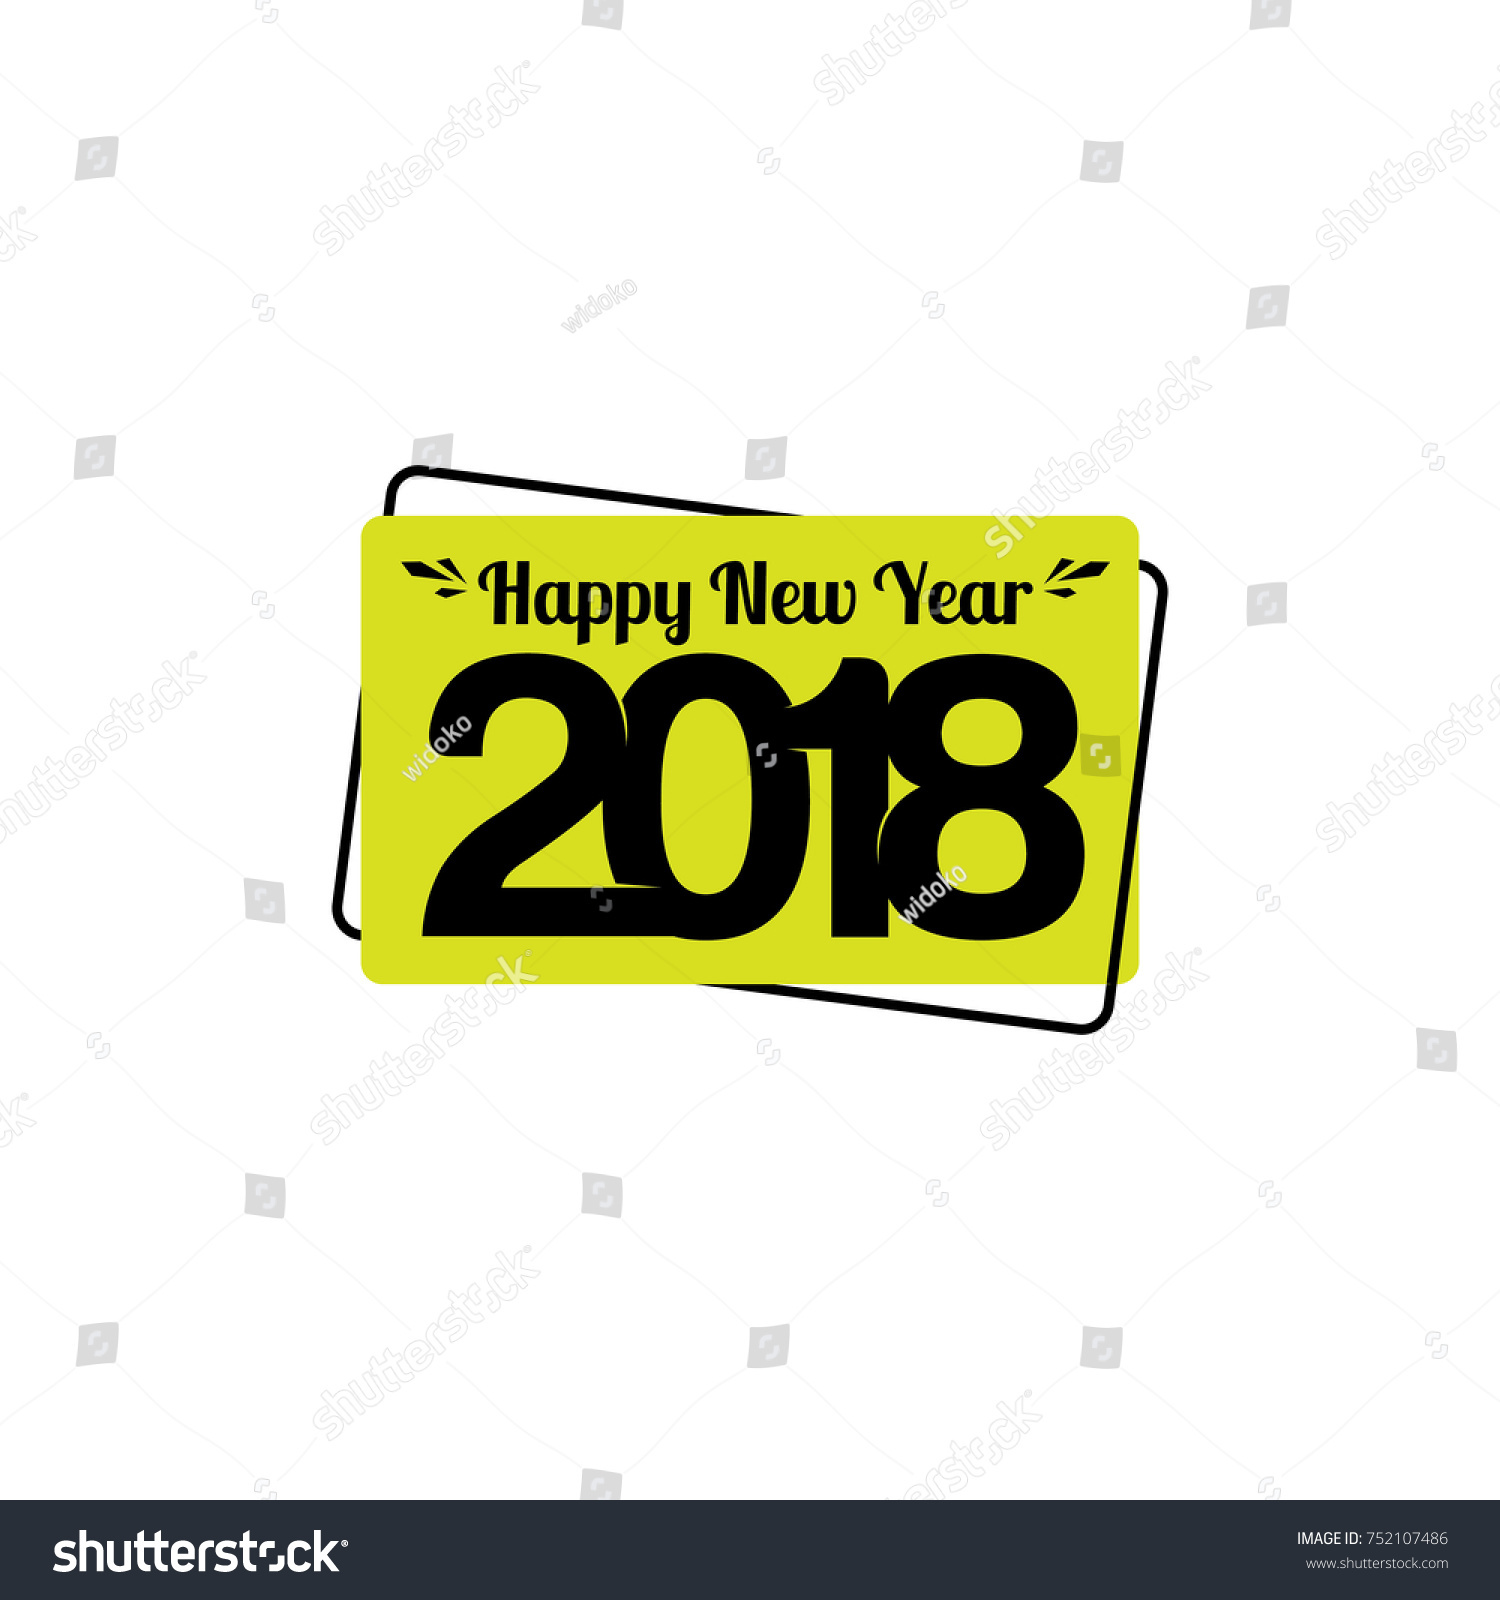 2018 happy new year trendy flat geometric vector bubbles vivid transparent banners in retro